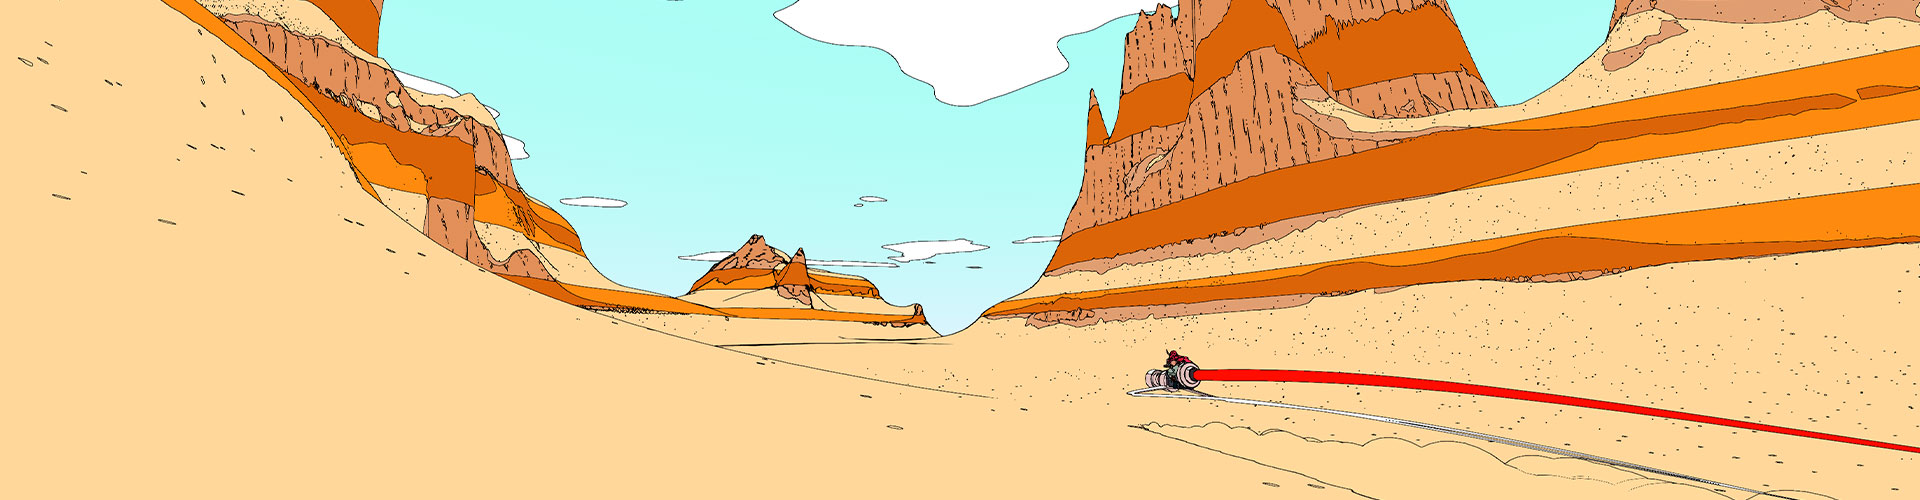 Sable on a hoverbike going through a canyon